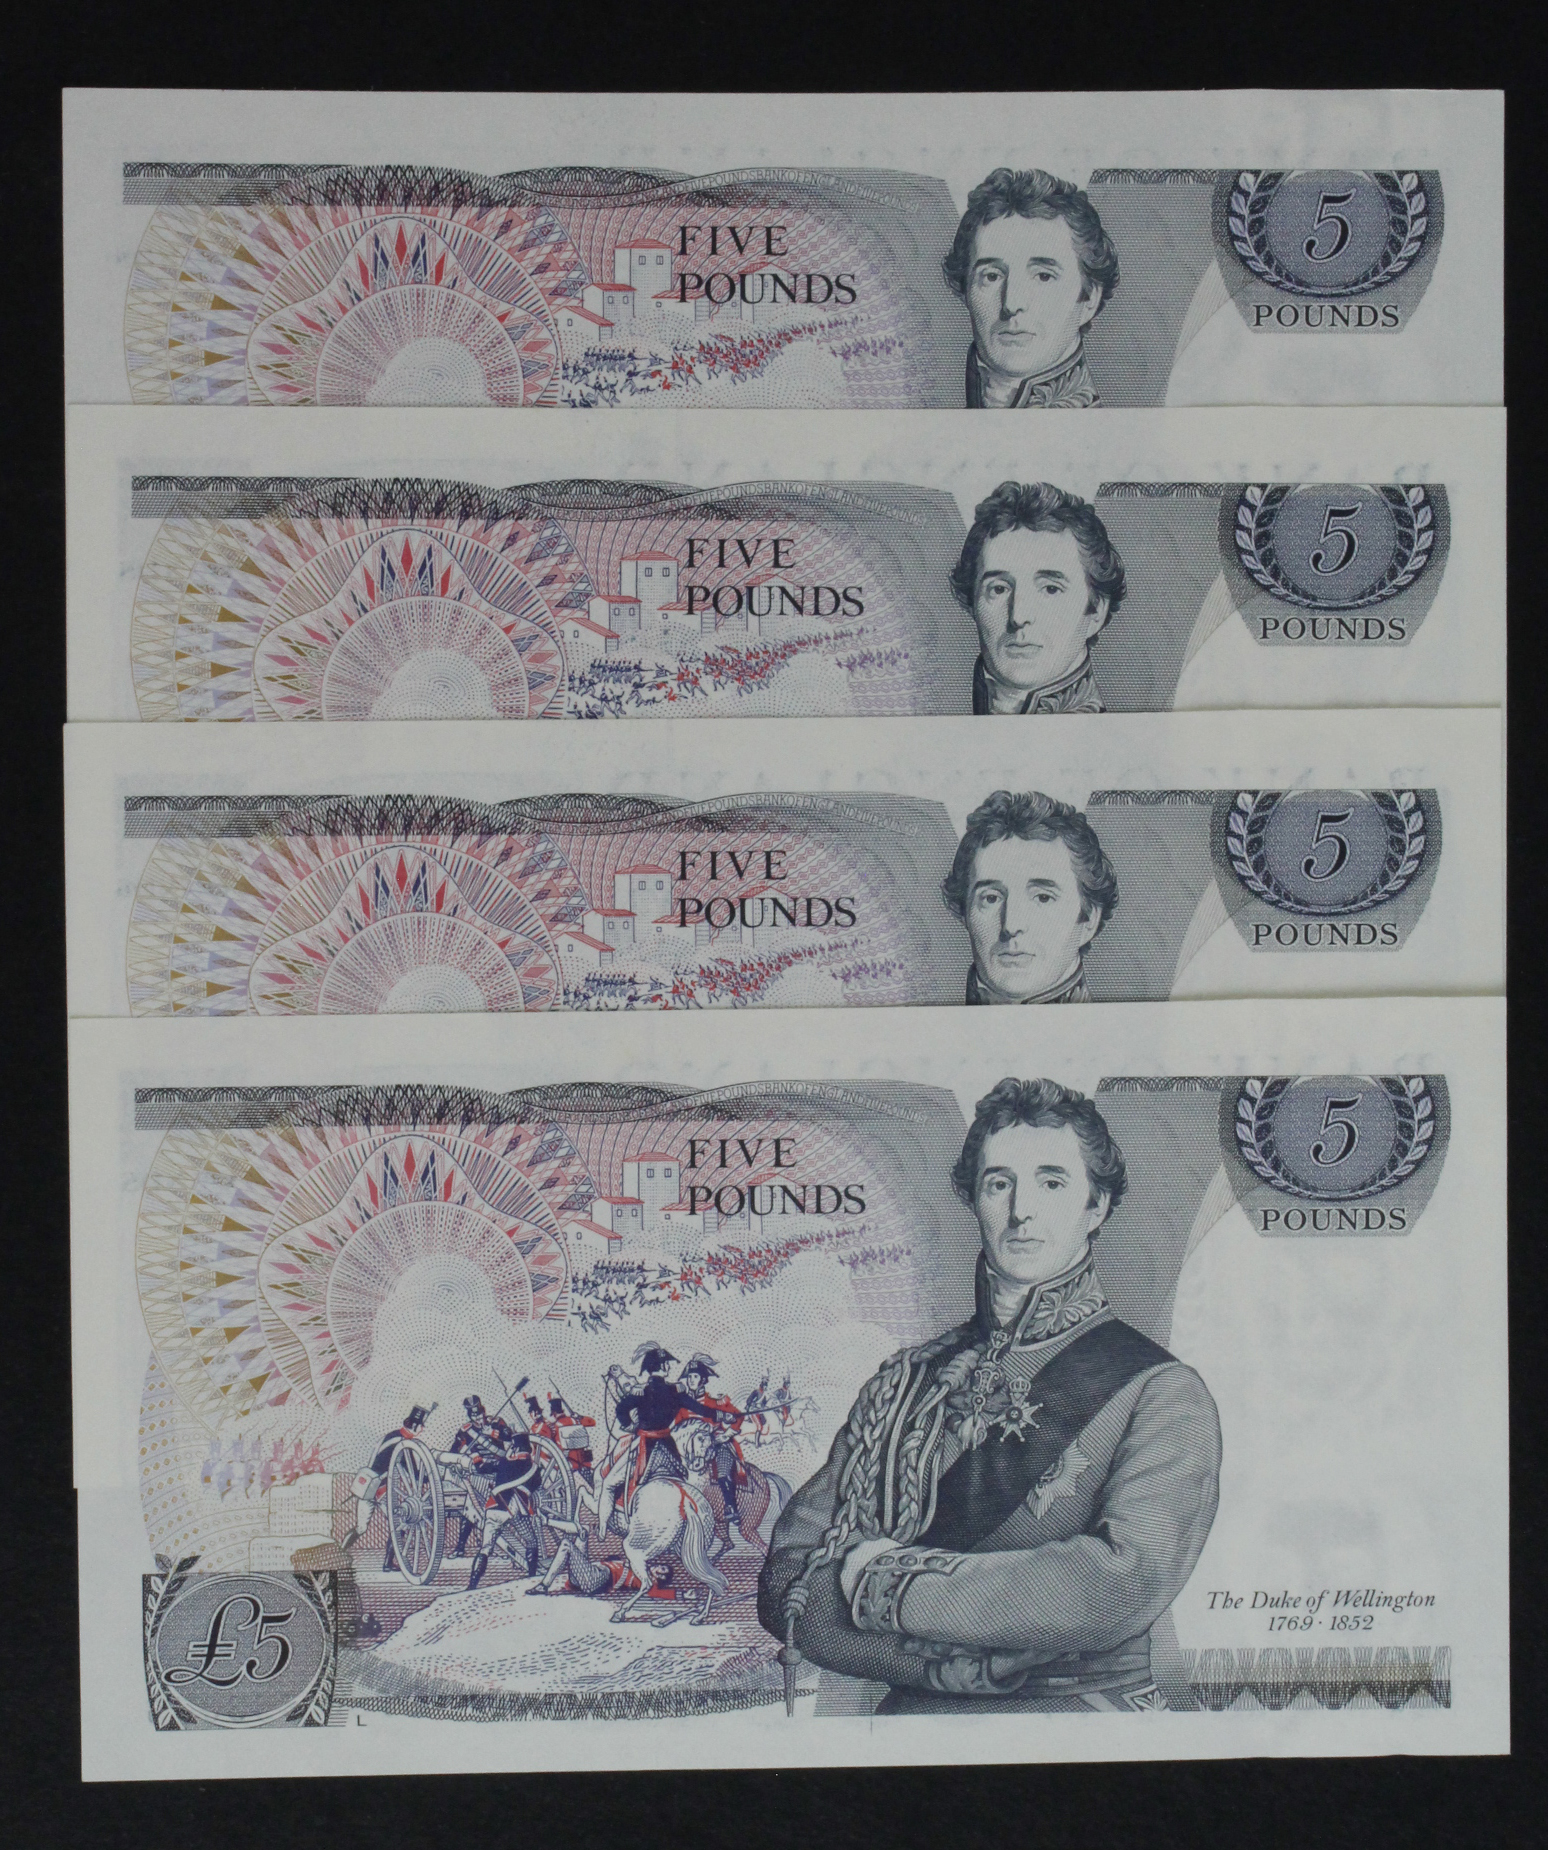 Page 5 Pounds (4) issued 1973, a consecutively numbered run, serial BT50 653075 - BT50 653078 (B336, - Image 2 of 2